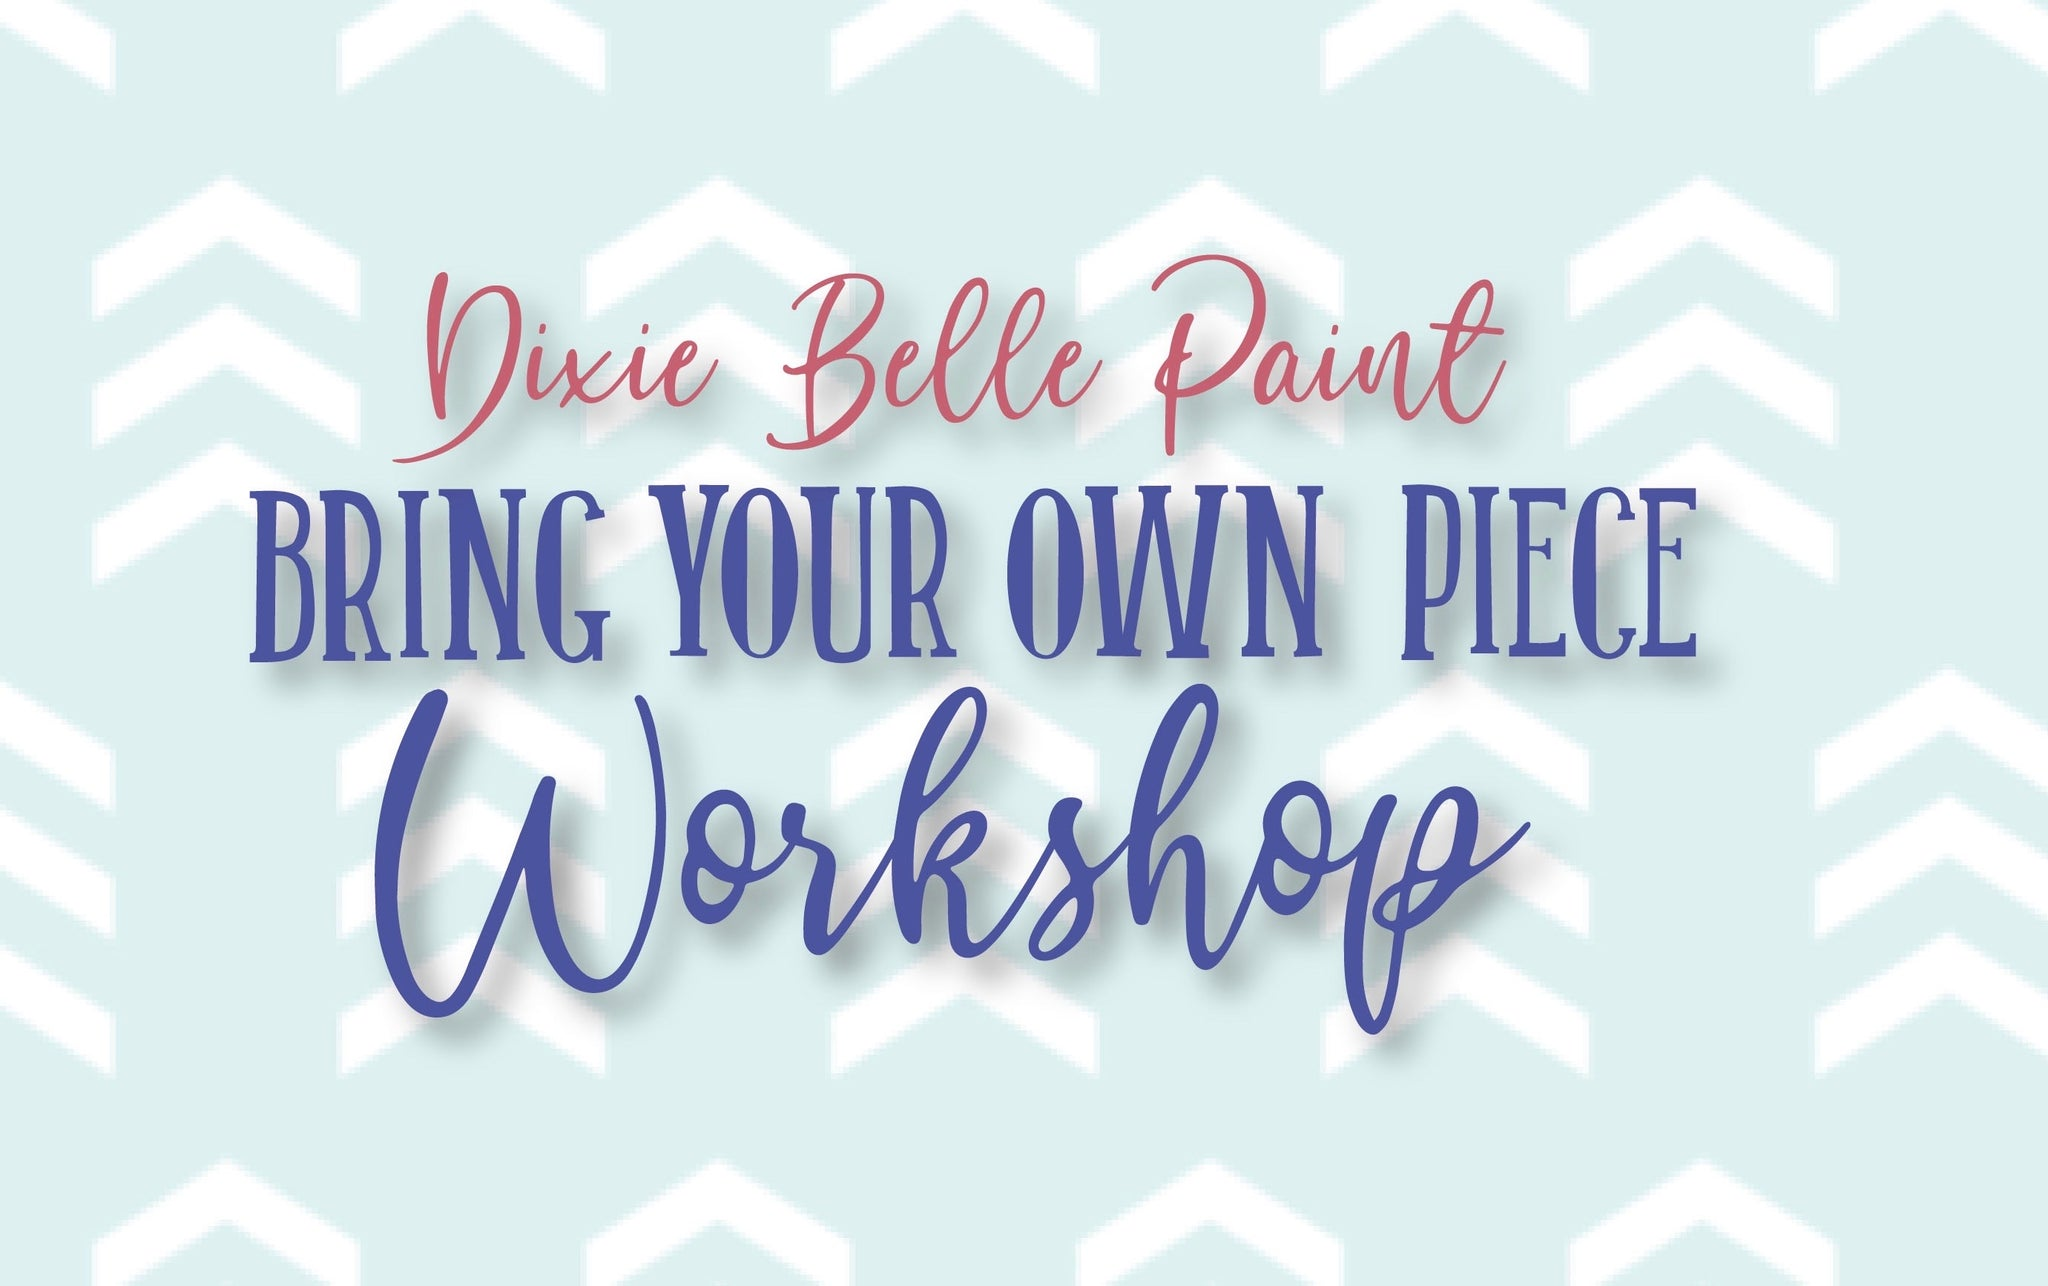 Dixie Belle bring your own piece class